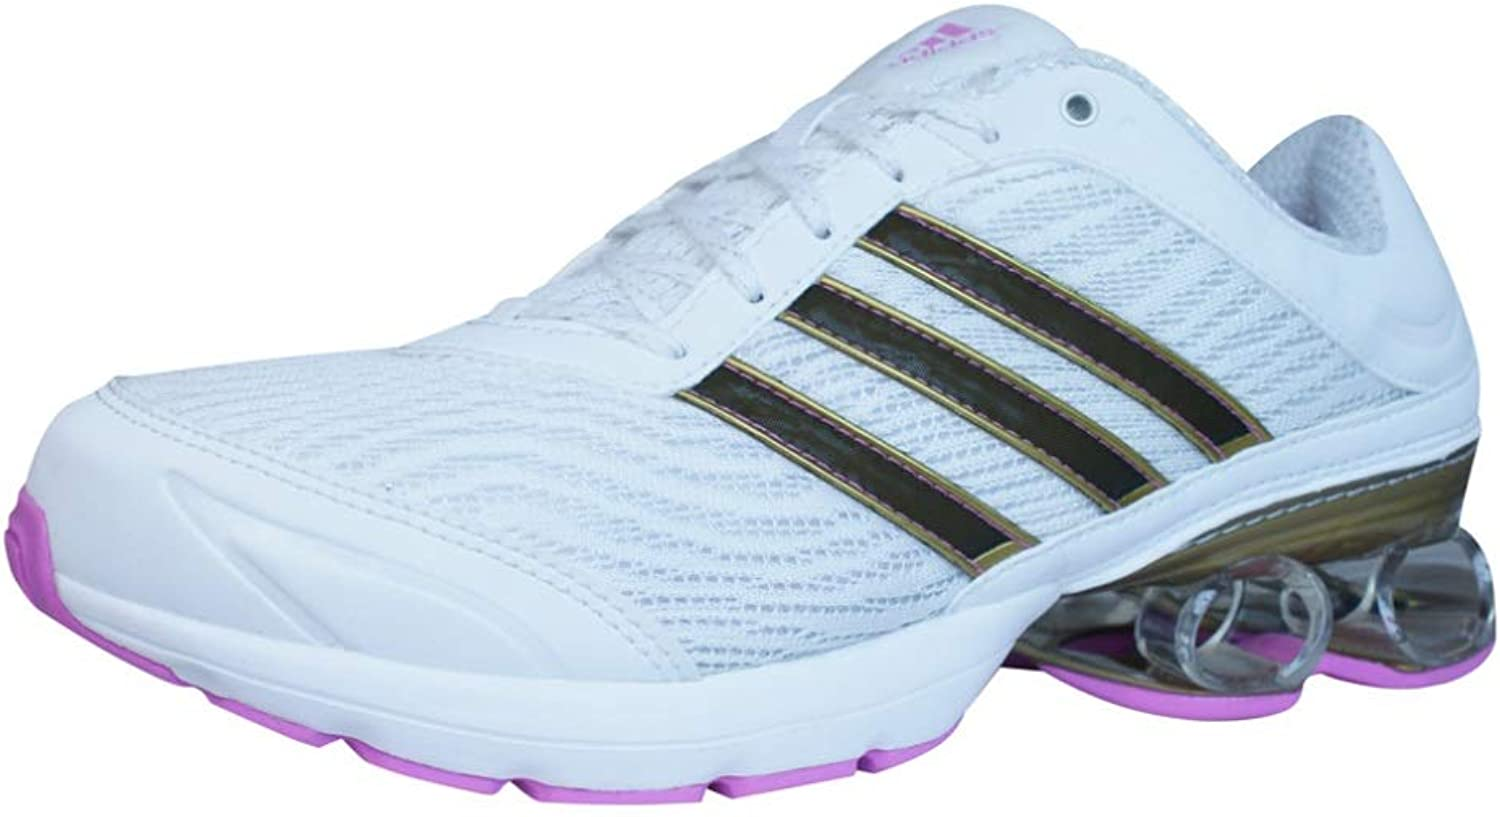 Adidas Neptune Bounce Womens Running Sneakers shoes - White